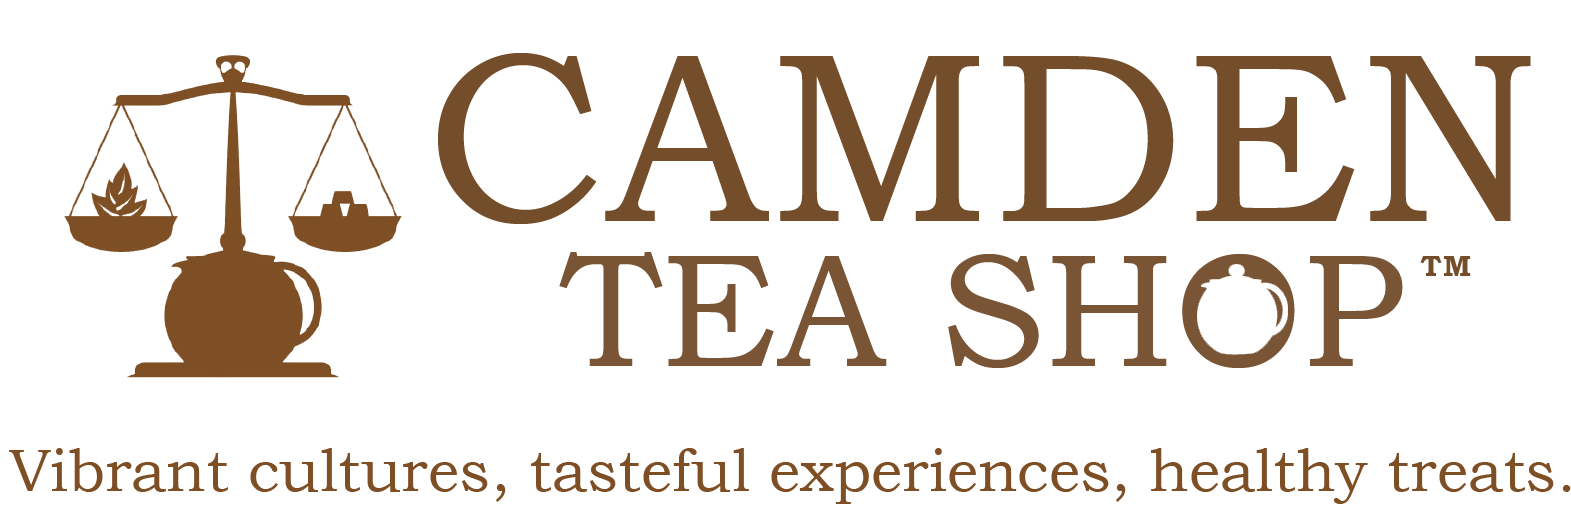 Camden Tea Shop